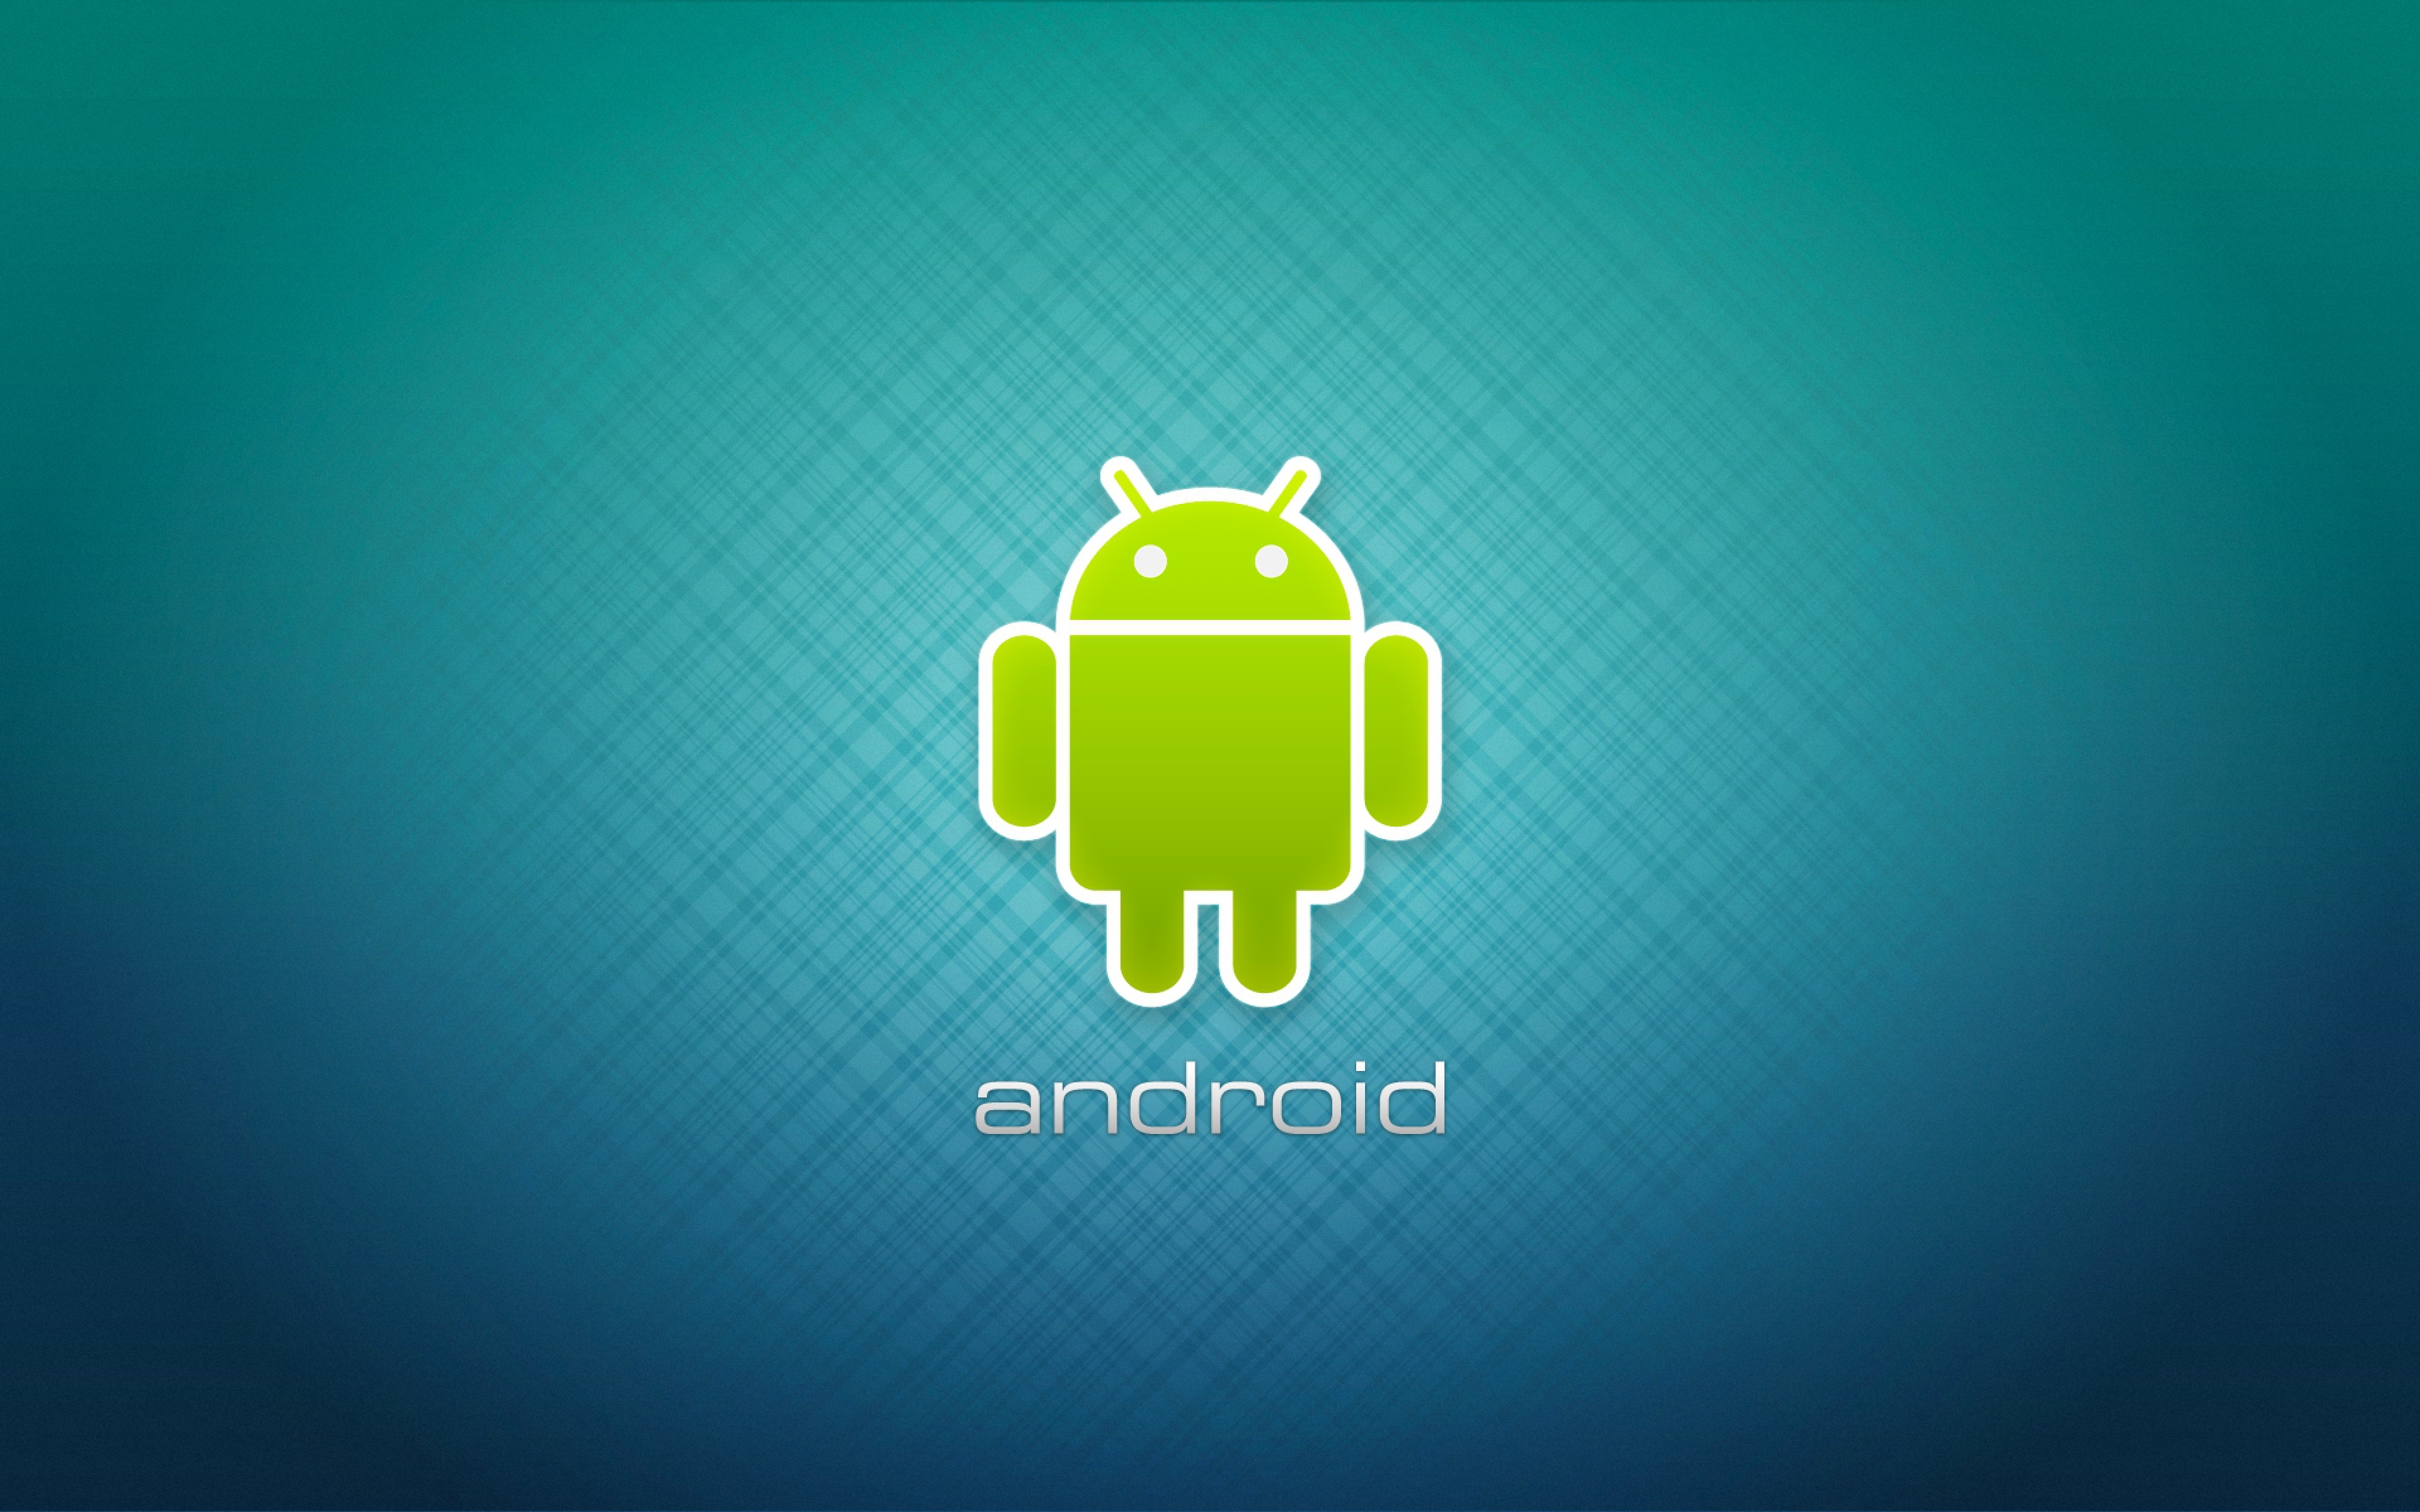 Wallpaper 3840x2400 Android Robot Logotype Ultra HD 4K HD Background 3840x2400